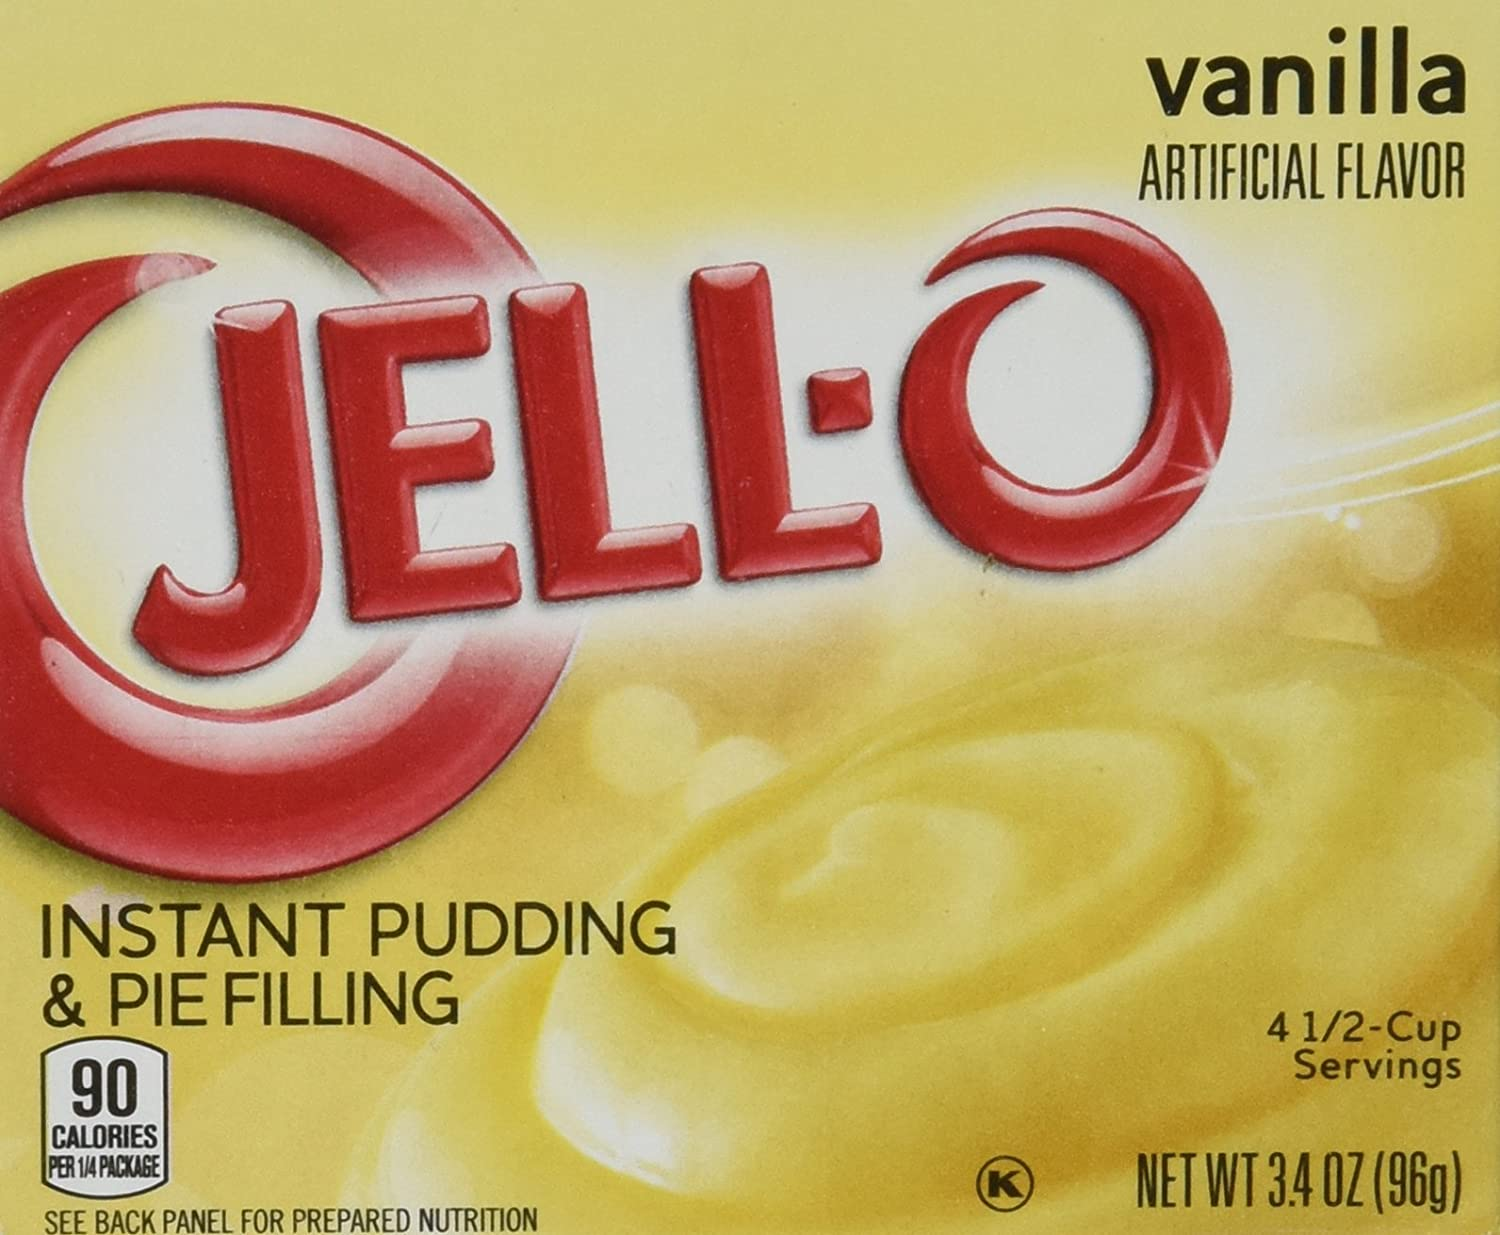 JELL-O Jello Instant Pudding and Pie Filling 4 Boxes (Vanilla)3 4 net oz